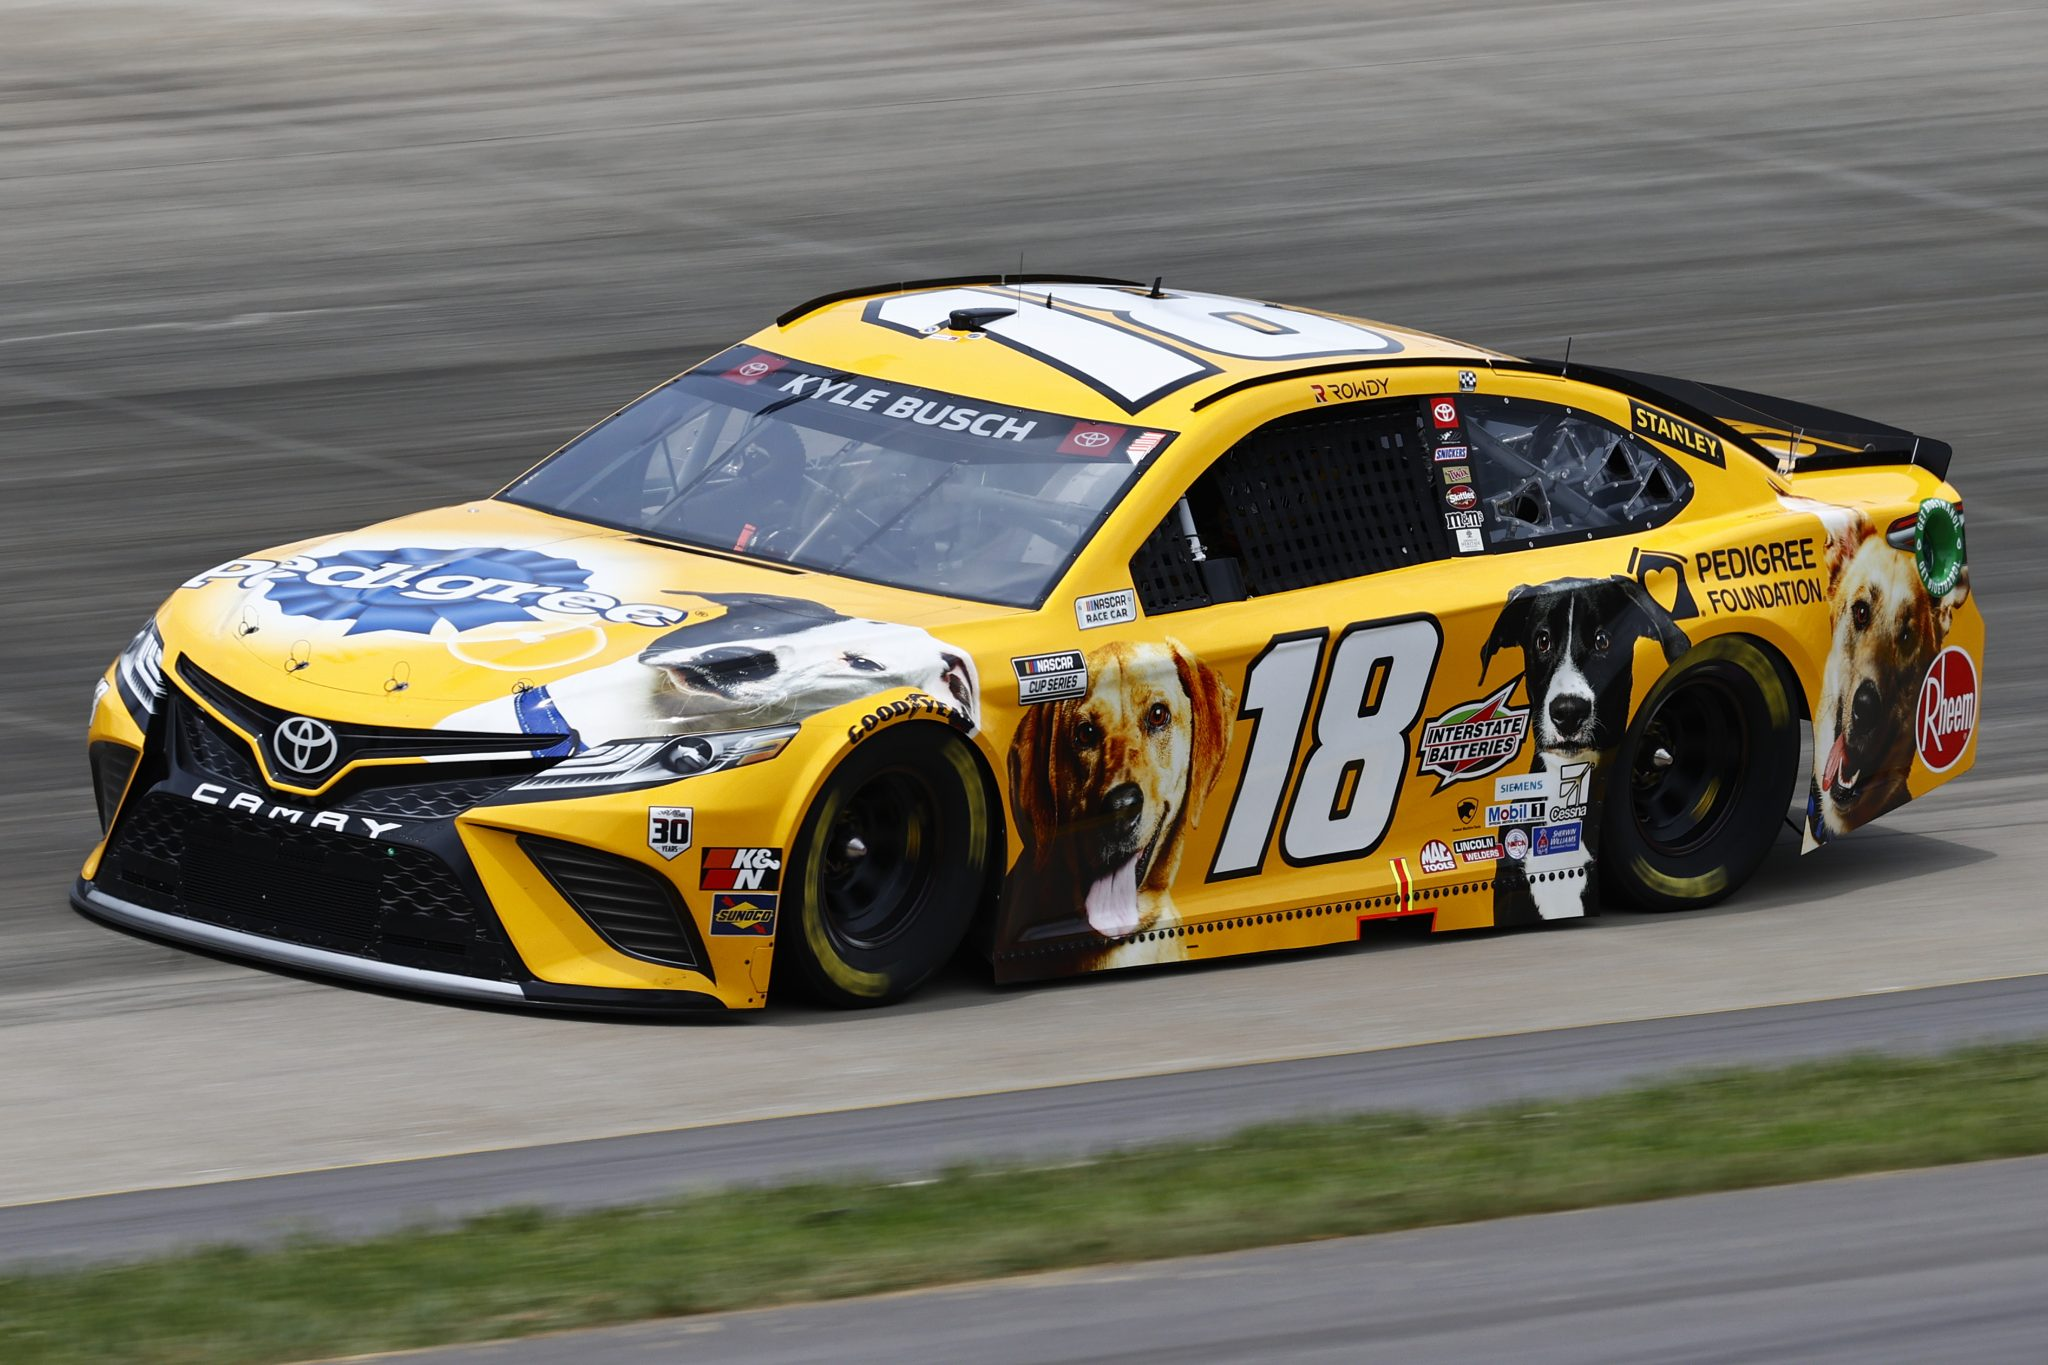 LEBANON, TENNESSEE - JUNE 19: Kyle Busch, driver of the #18 Pedigree Toyota, drives during practice for the NASCAR Cup Series Ally 400 at Nashville Superspeedway on June 19, 2021 in Lebanon, Tennessee. (Photo by Jared C. Tilton/Getty Images) | Getty Images